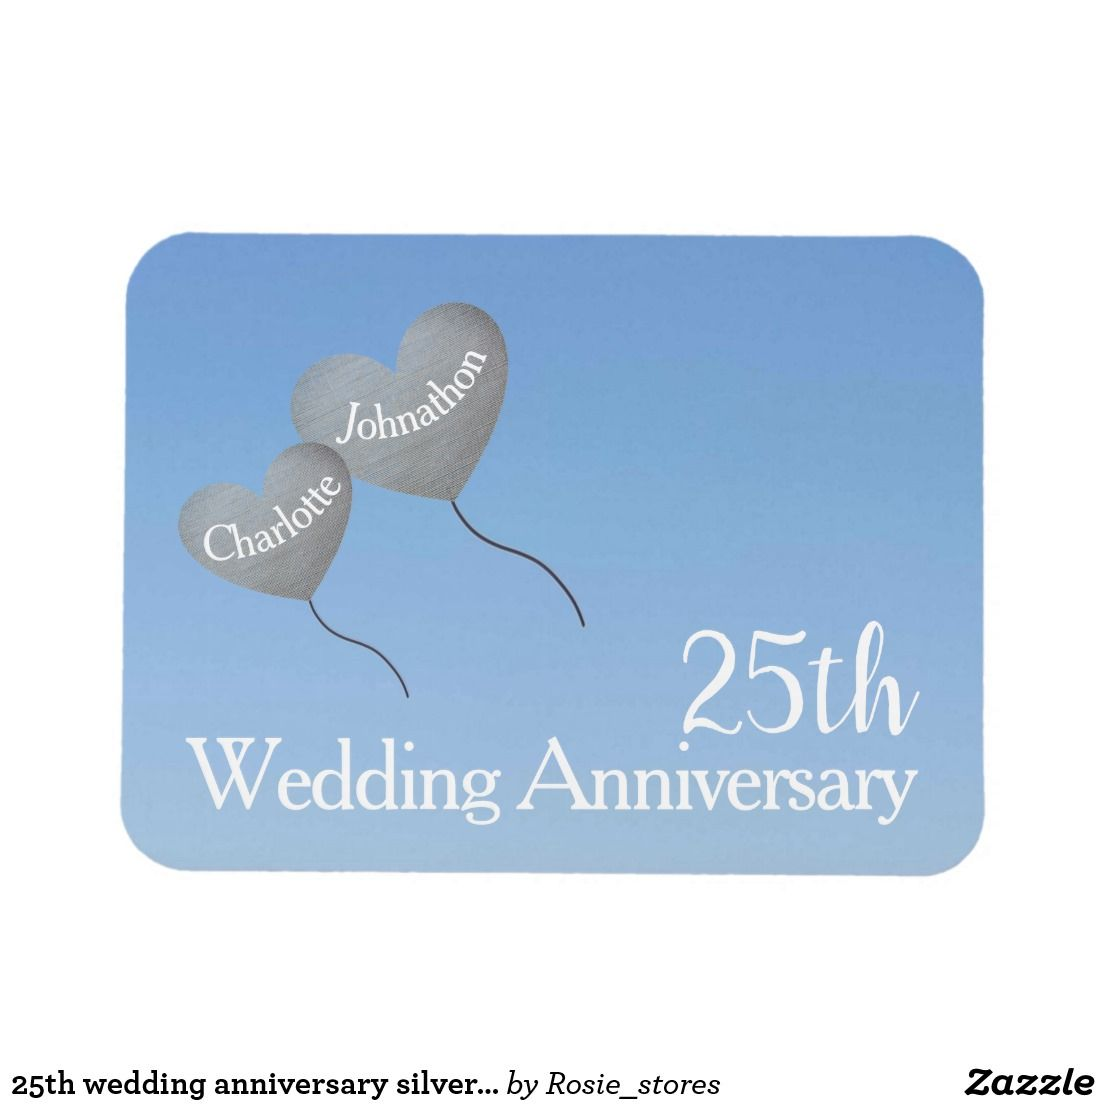 25th wedding anniversary silver heart balloons